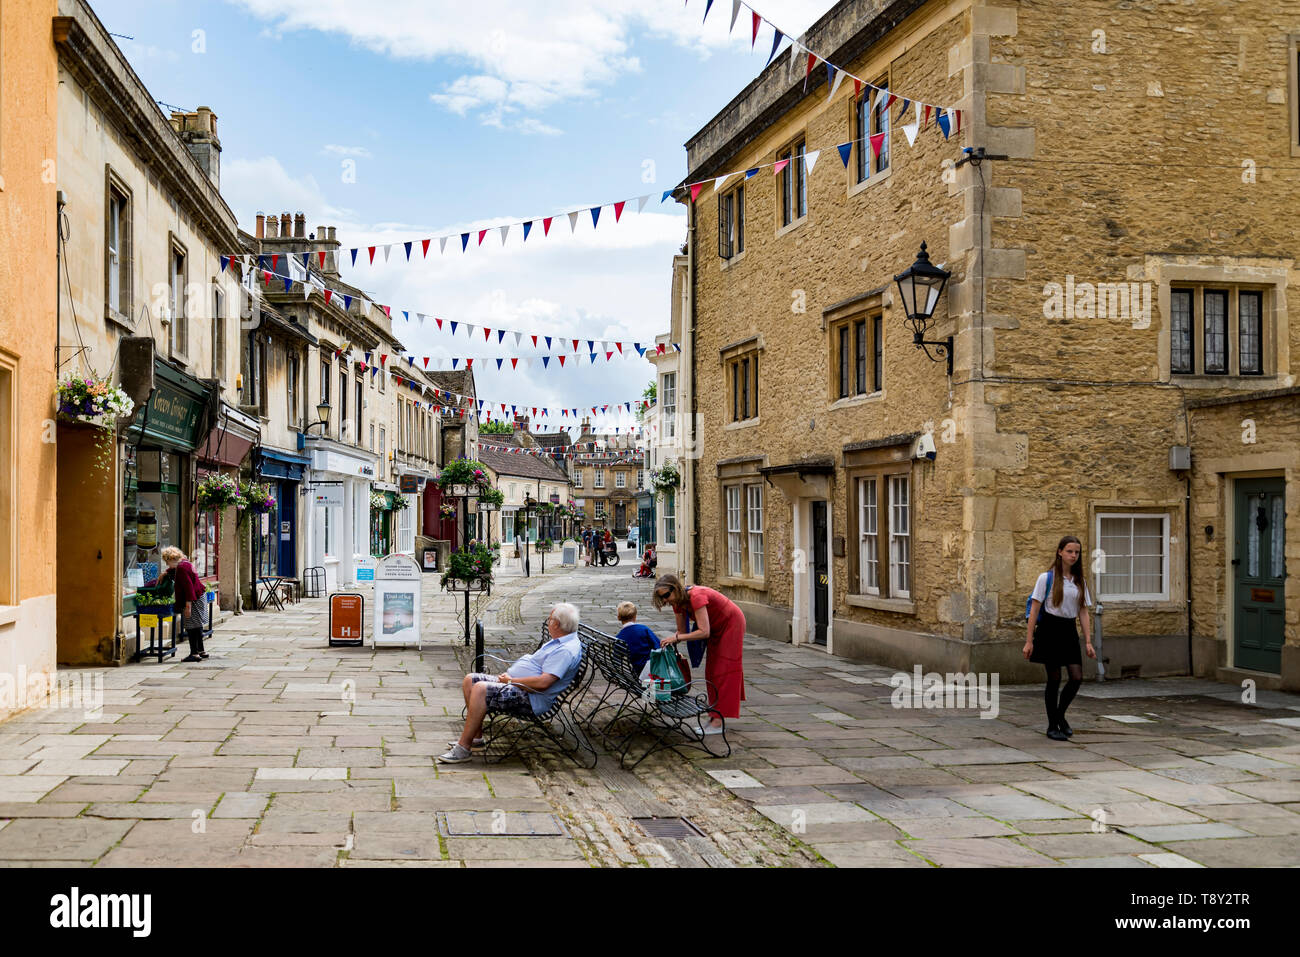 street in the market town of Corsham England, UK Stock Photo